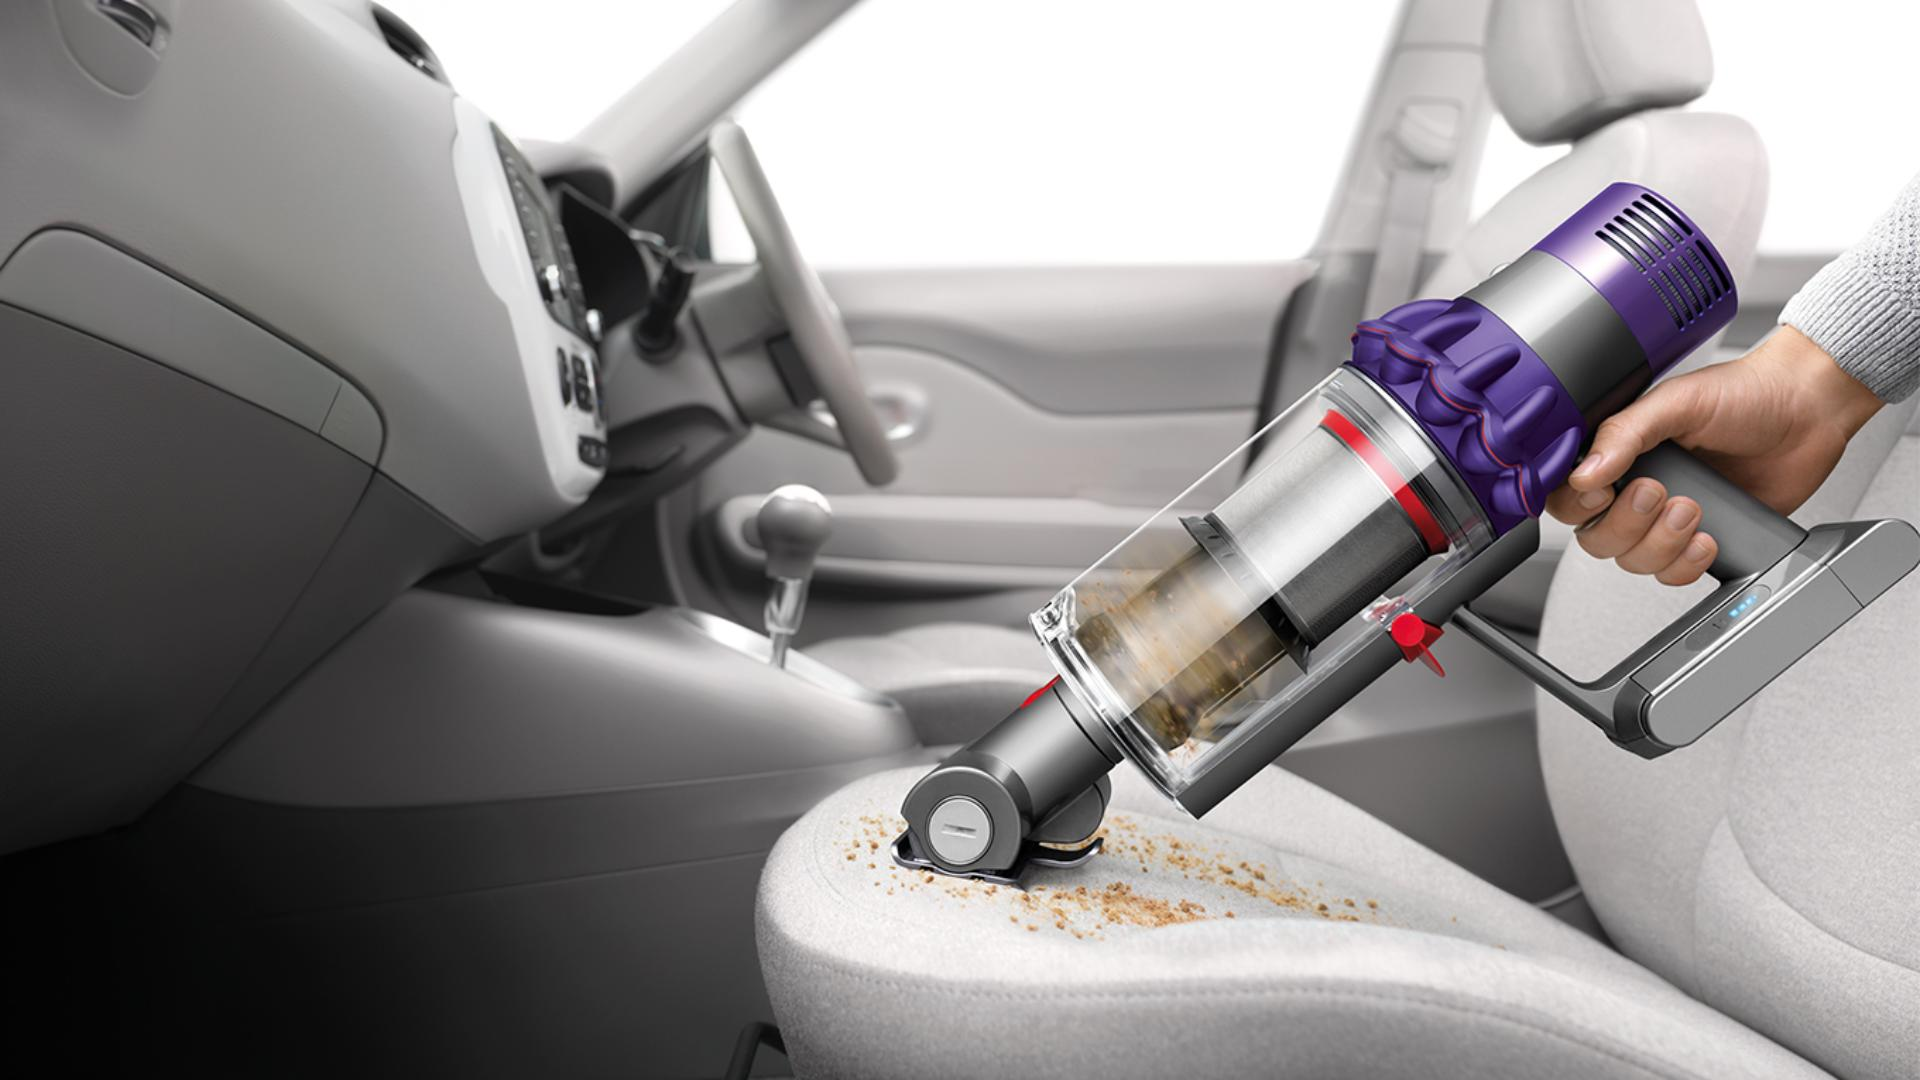 Dyson Cyclone V10 vacuum cleaner being used a handheld to clean car interior